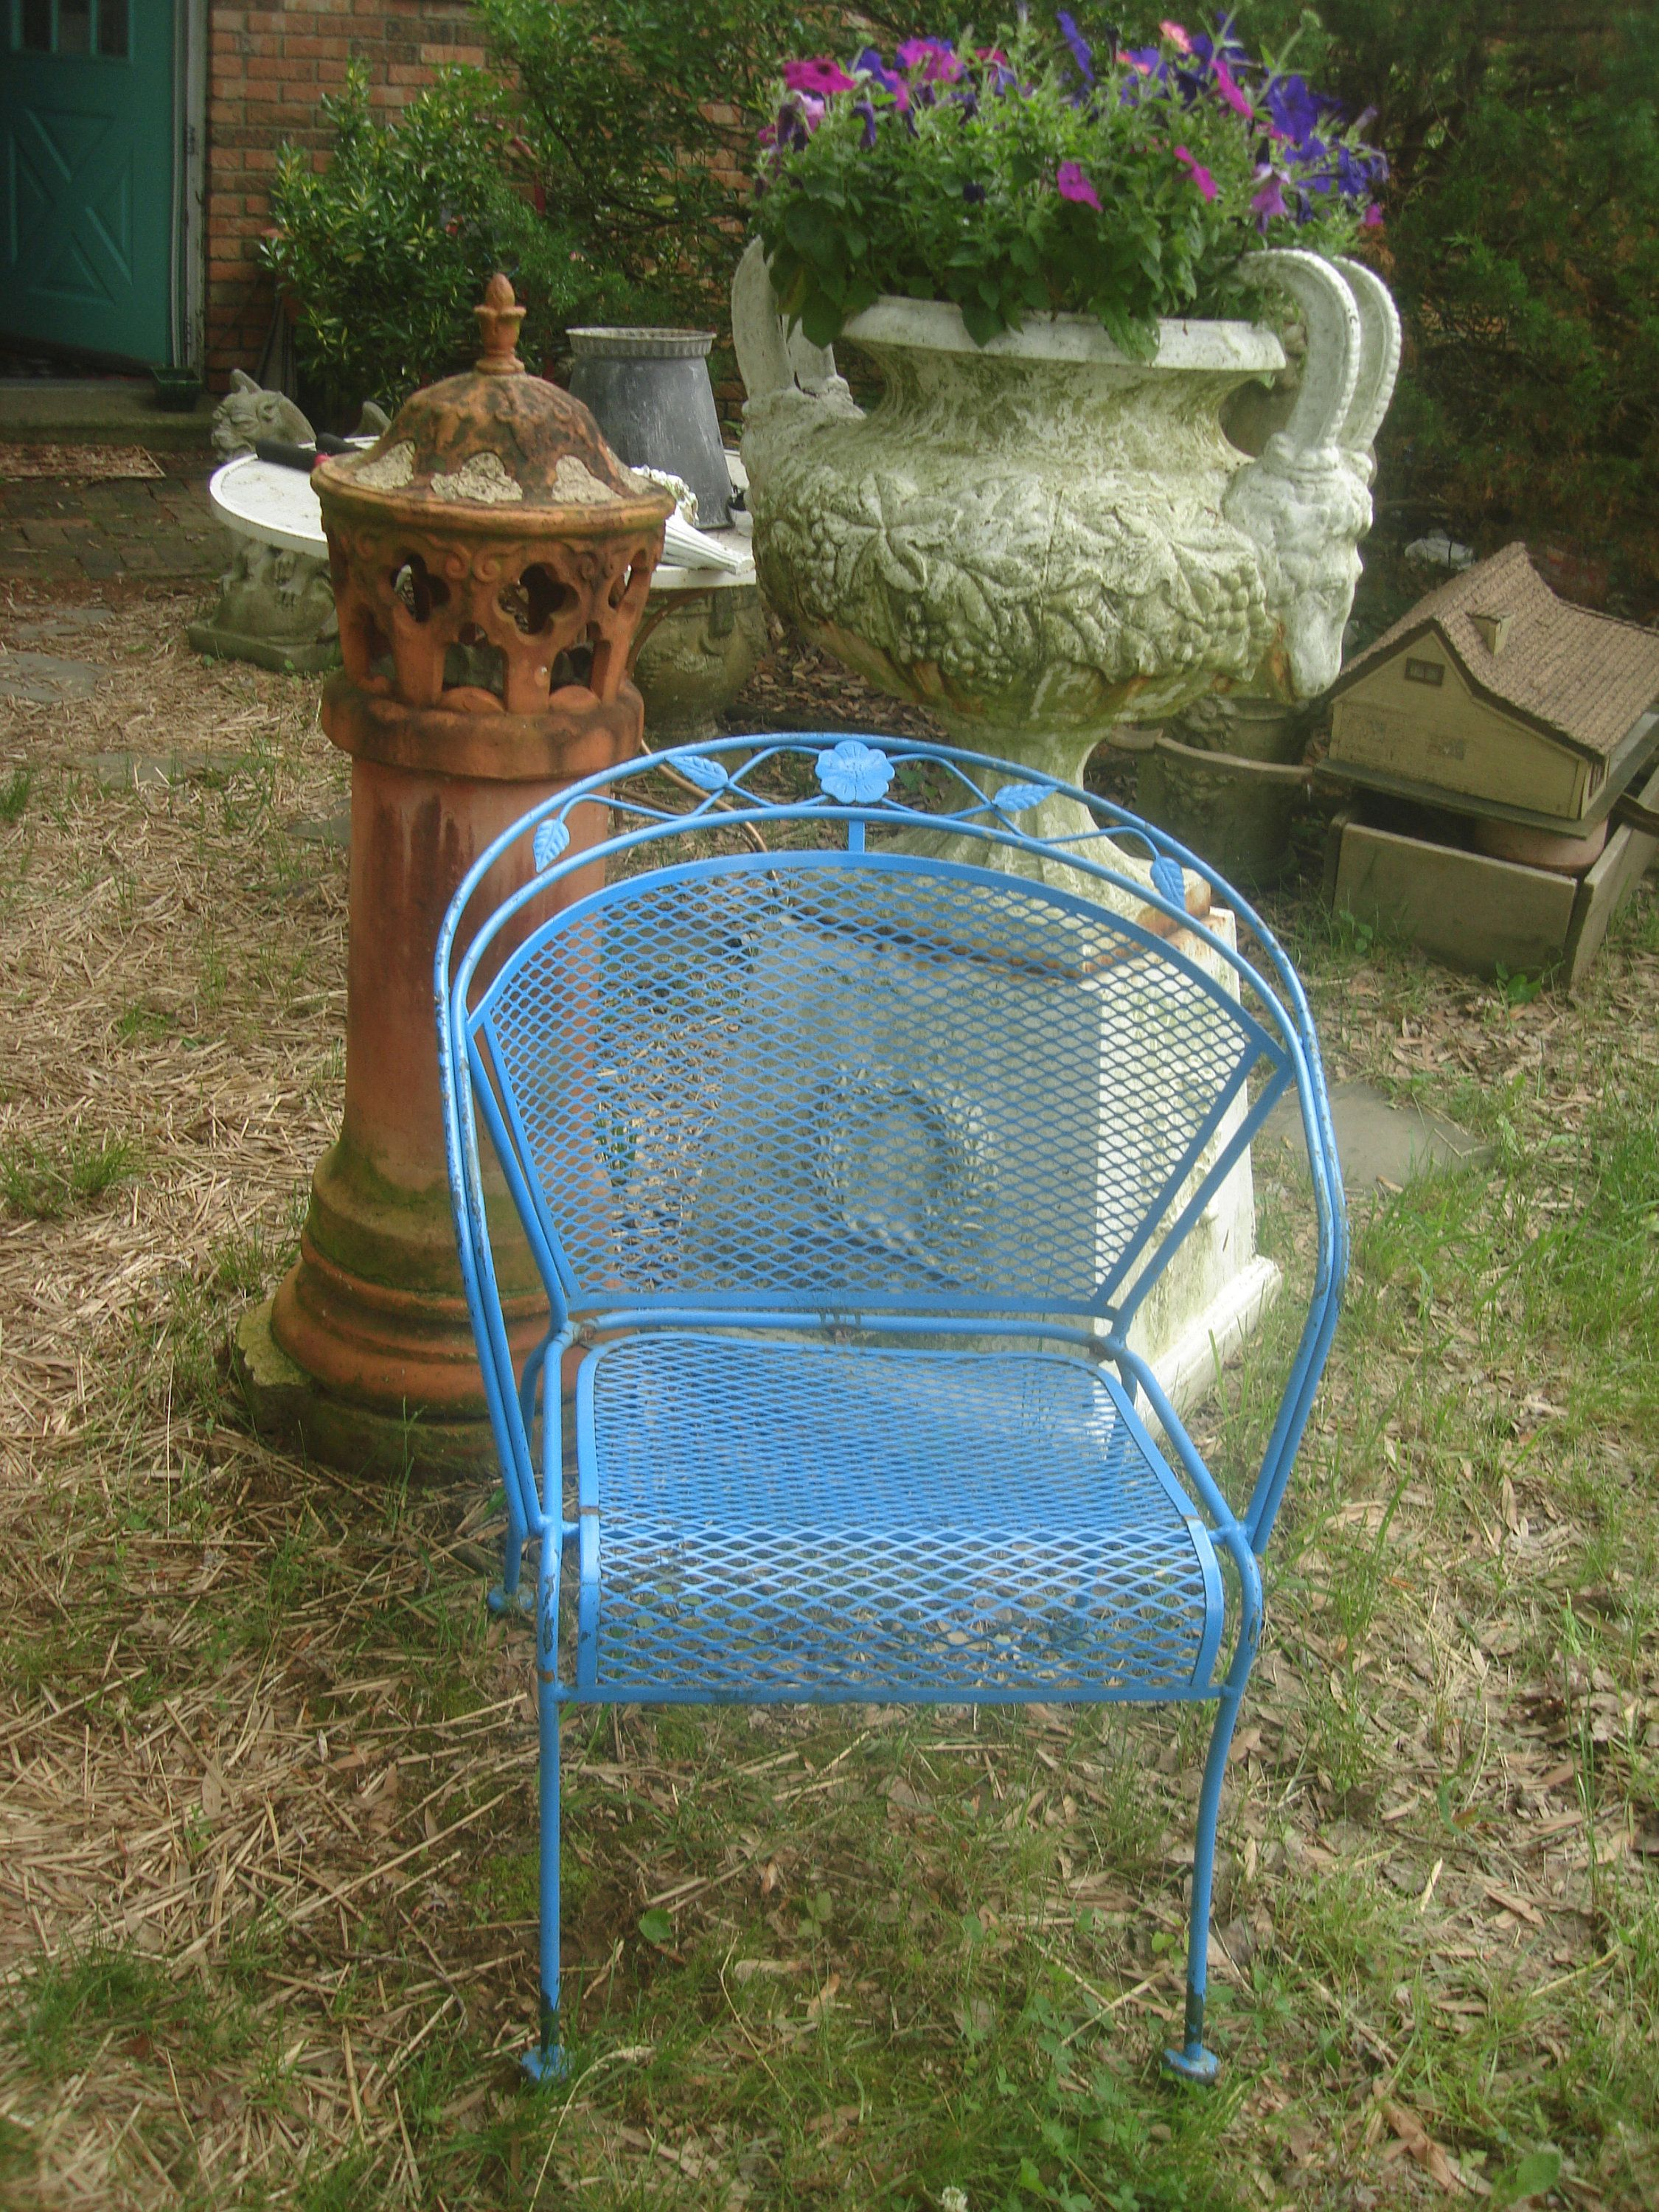 Vintage Metal Outdoor Chair Antique Ornate Iron Garden French Blue Elegant Lawn By Stinkytinkystreasure On Etsy